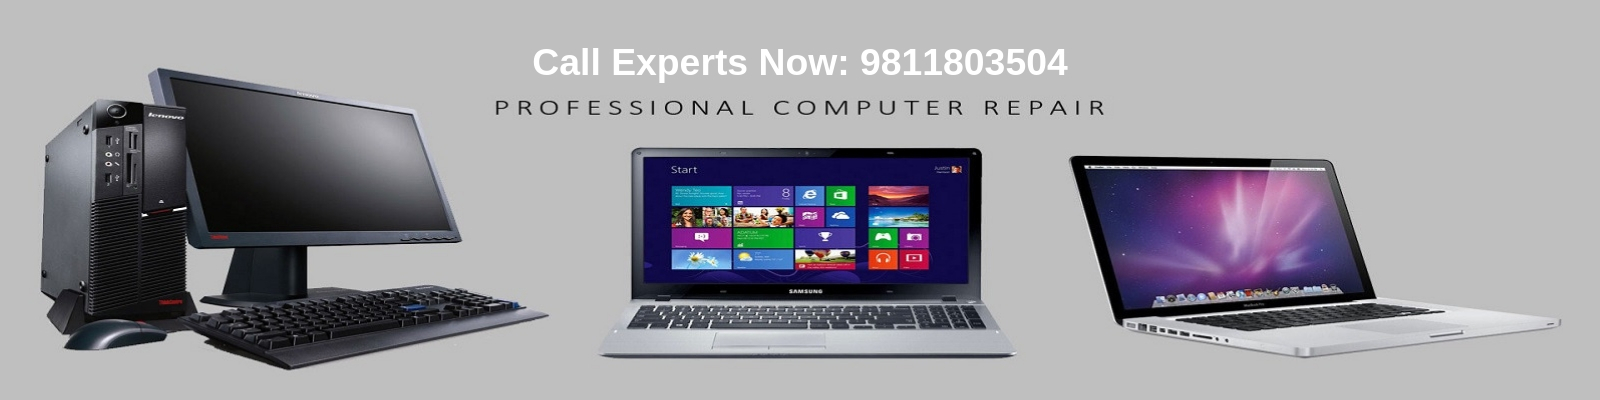 Computer, Laptop repair service shop near at home in South Delhi